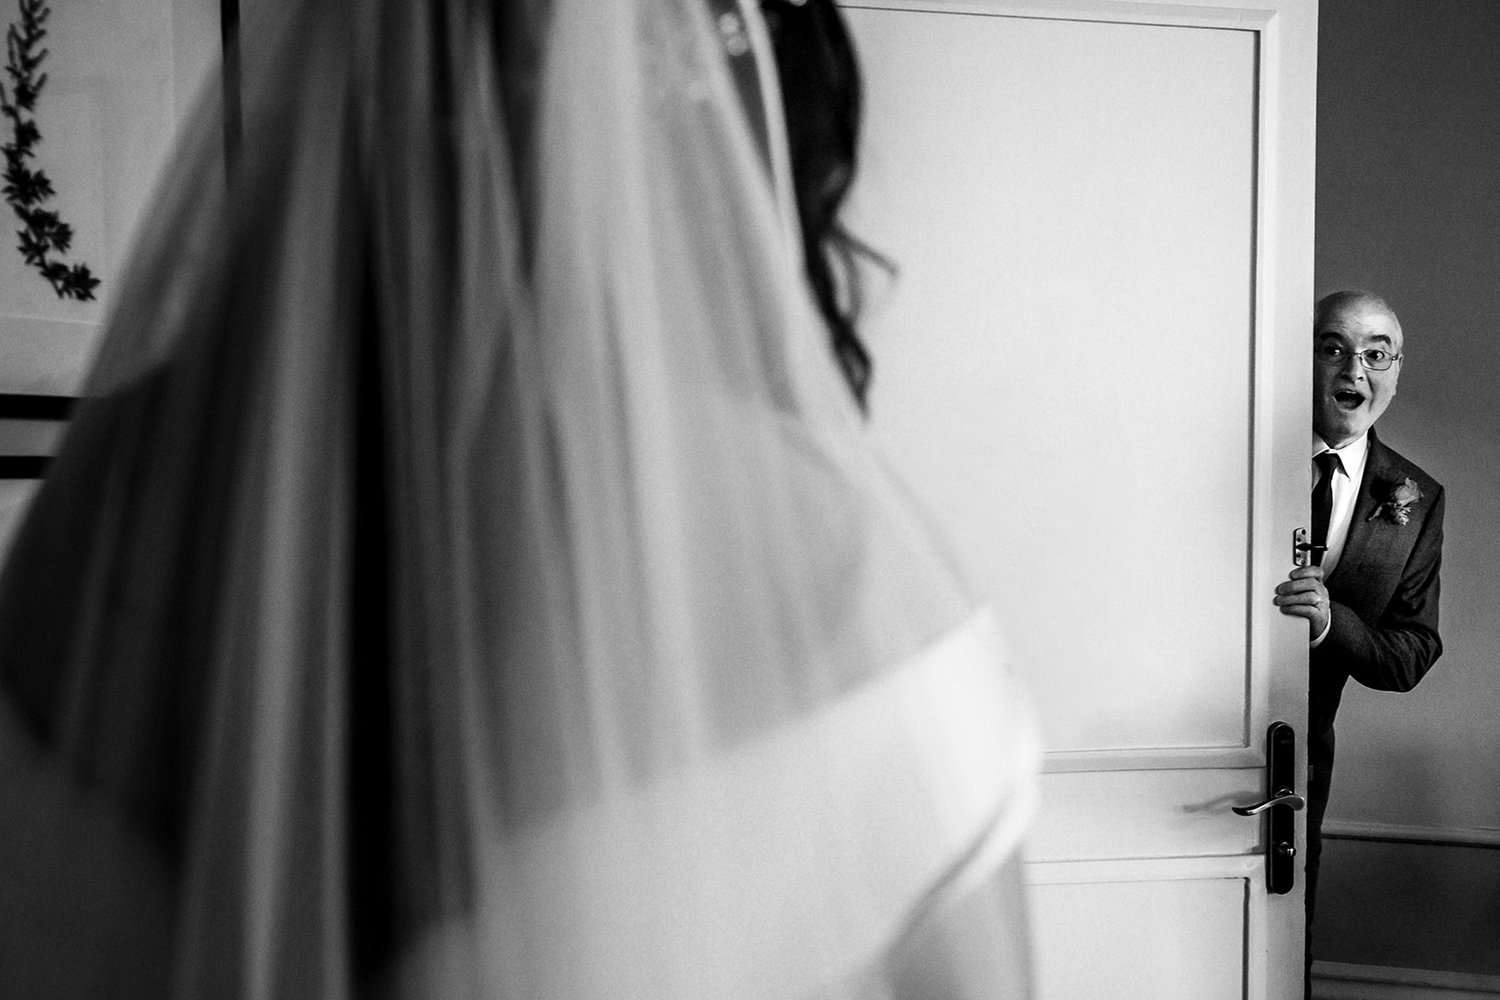 father of the bride peeking round the door looking surprised at seeing his daughter in her wedding dress